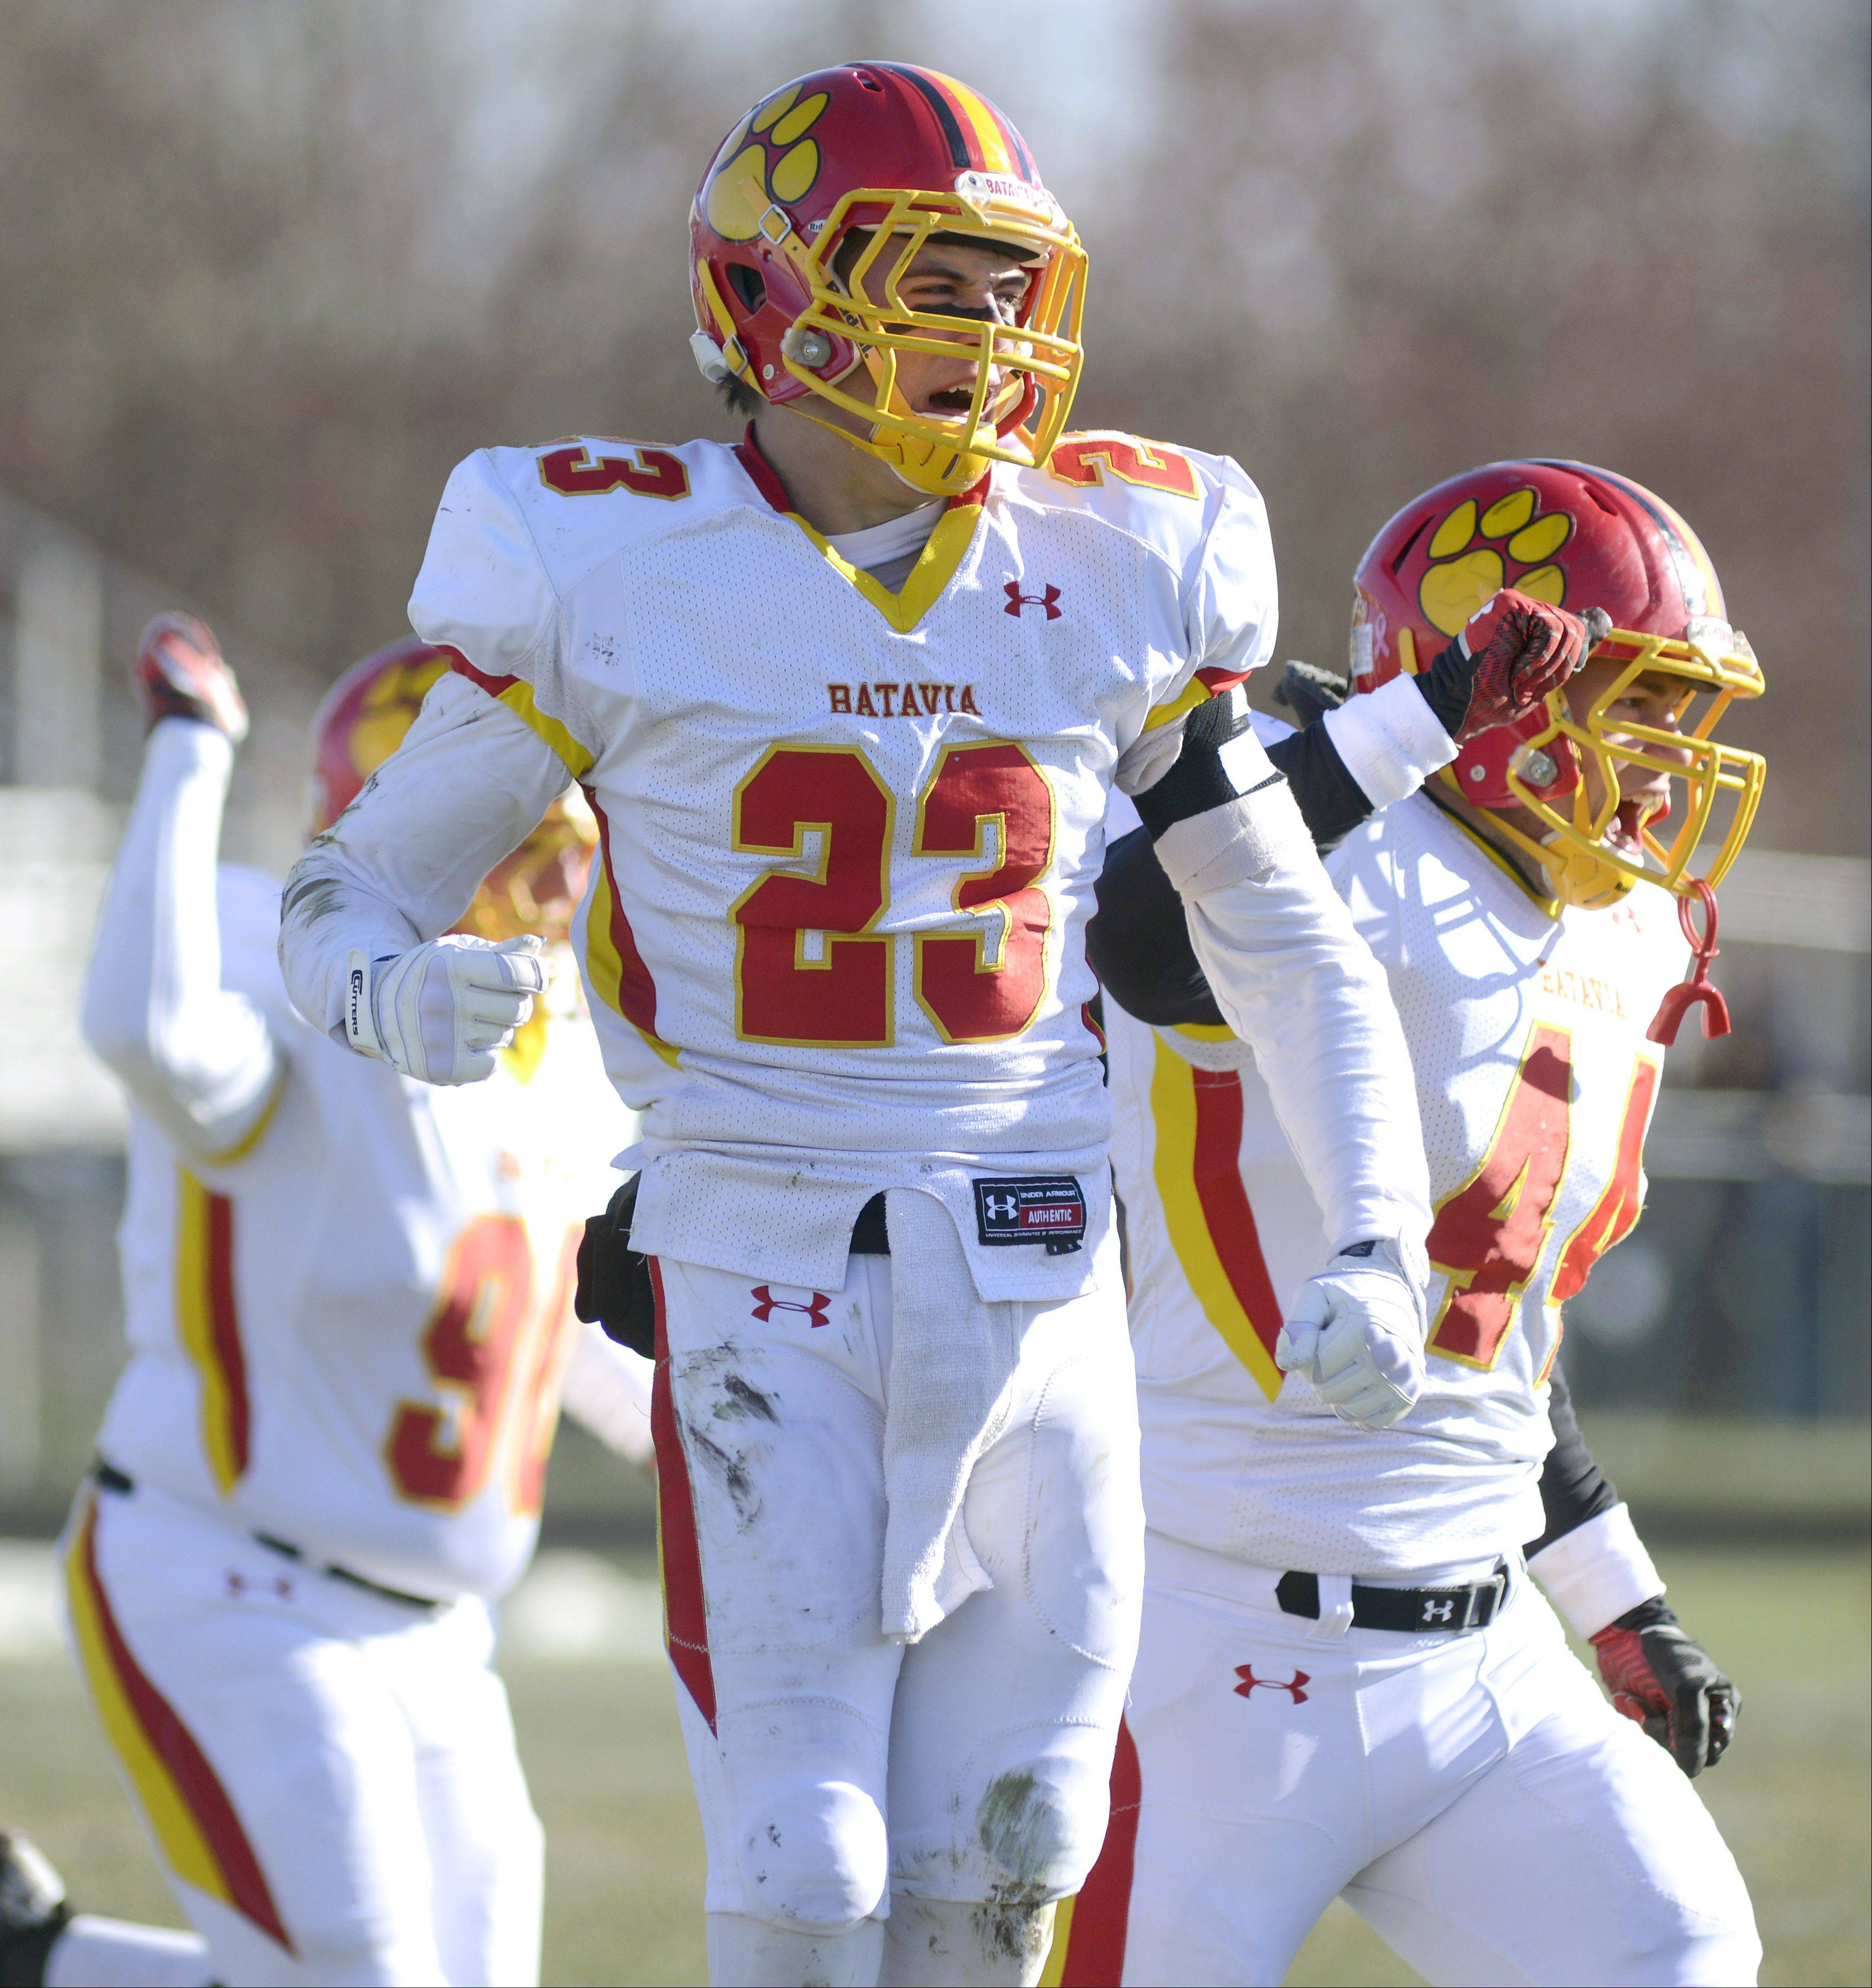 Batavia's Michael Moffatt (23) and Noah Frazier celebrate a Rockford Boylan fumble recovered by the Bulldogs in the first quarter of the Class 6A semifinal game on Saturday.